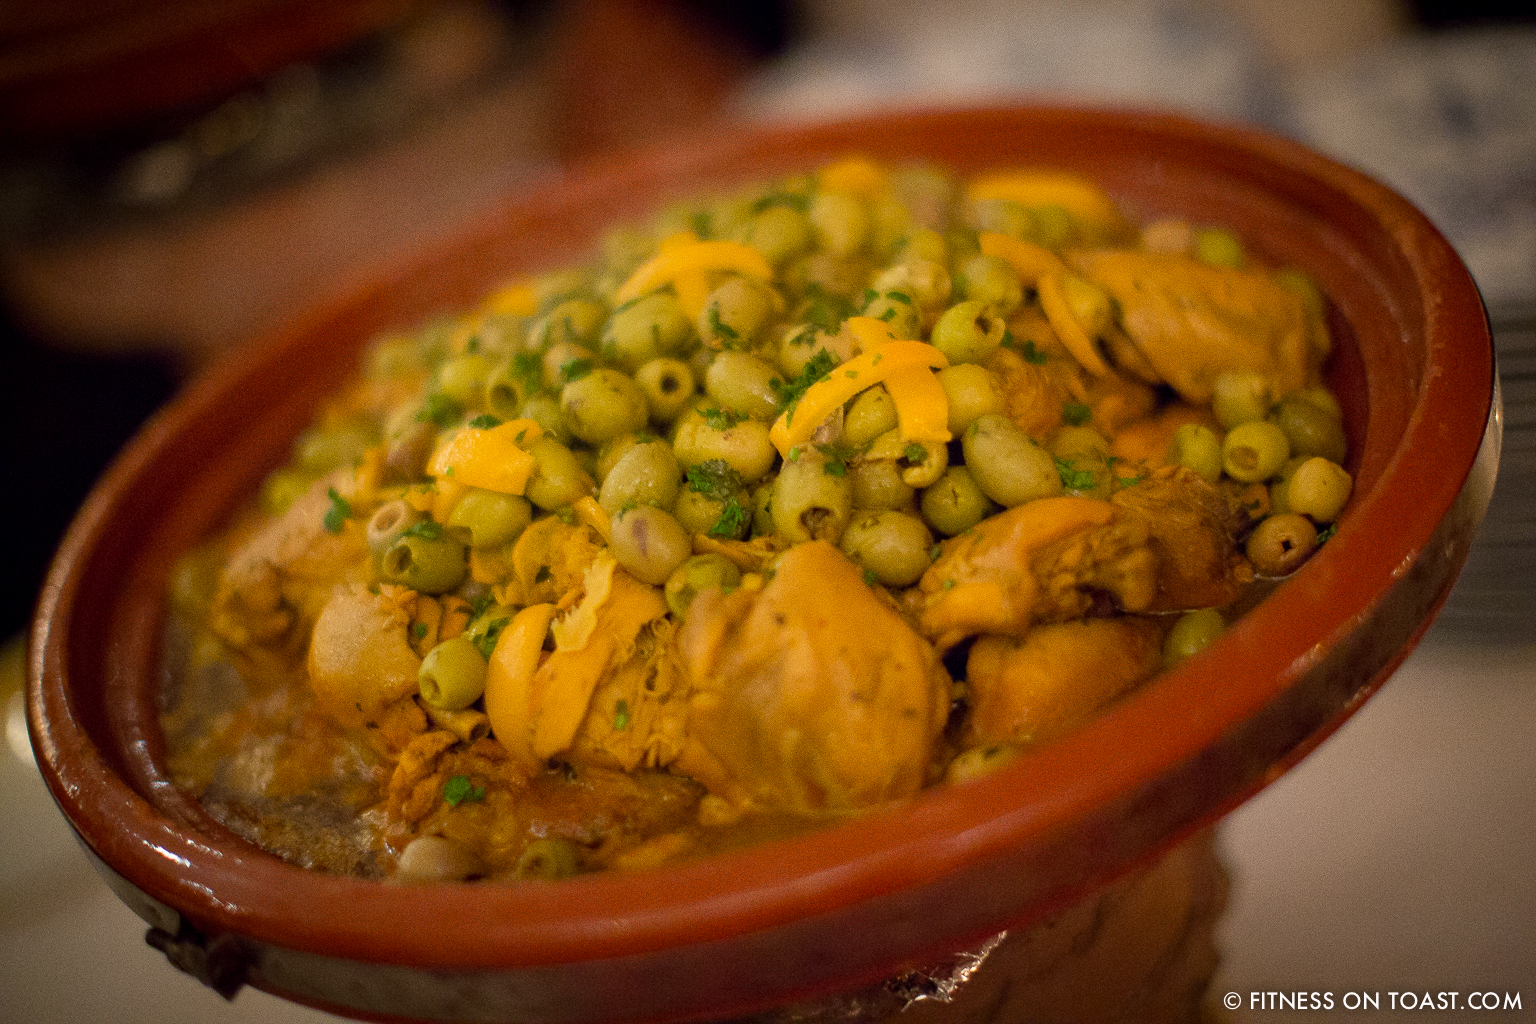 Fitness On Toast Faya Blog Girl Morocco Food Recipe Inspired Themed Moroccan Salad CousCous Tagine Saffron Courgette Chickpeas Zucchini Aubergine Sultanas Olives-9